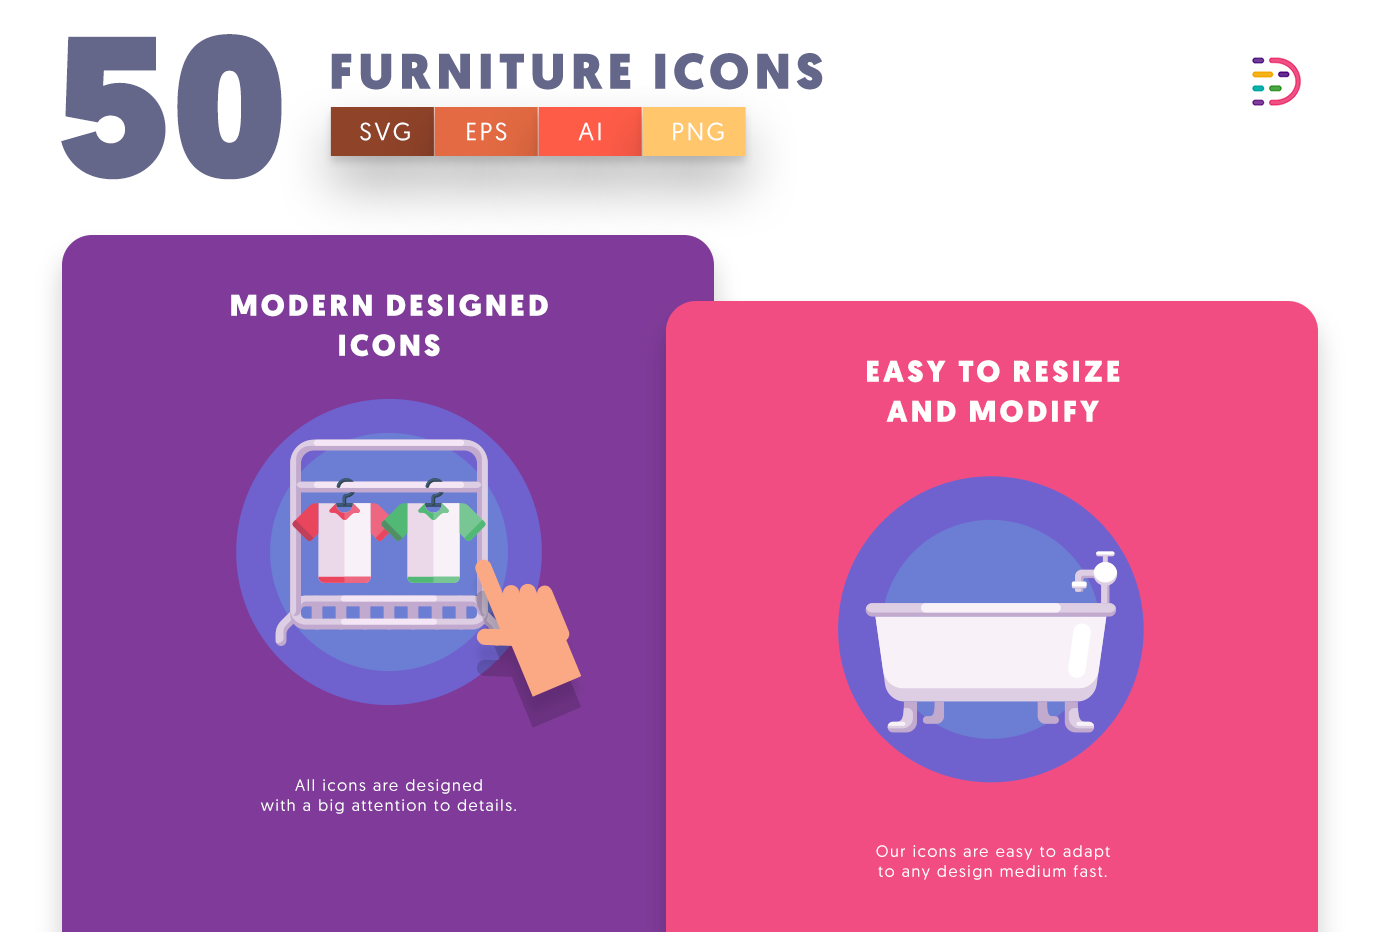 Furniture icons png/svg/eps